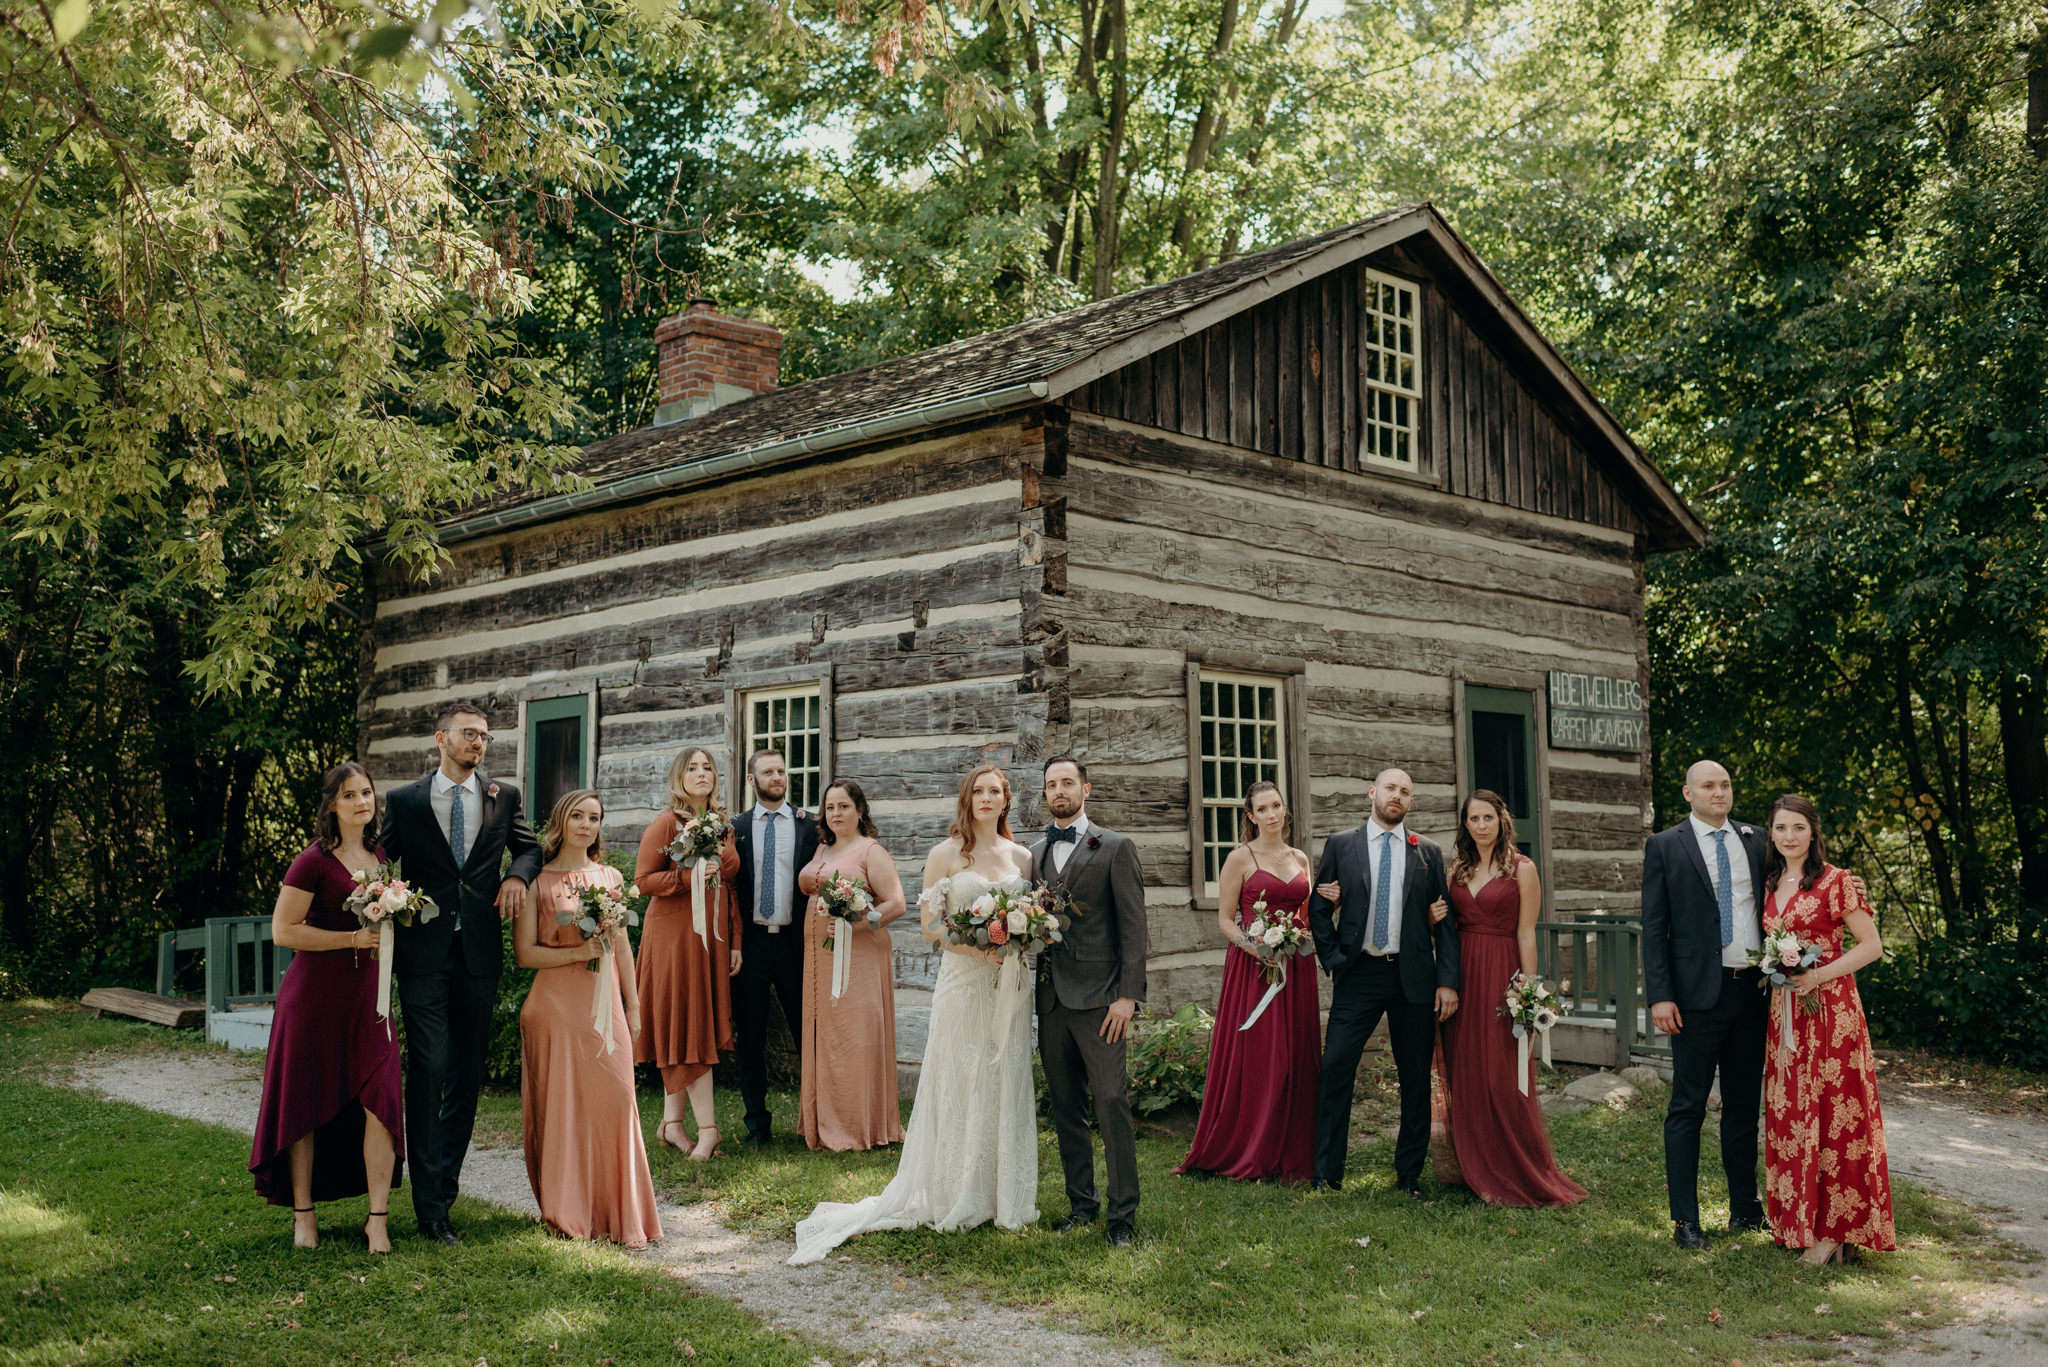 Wedding party portrait at Waterloo Region Museum